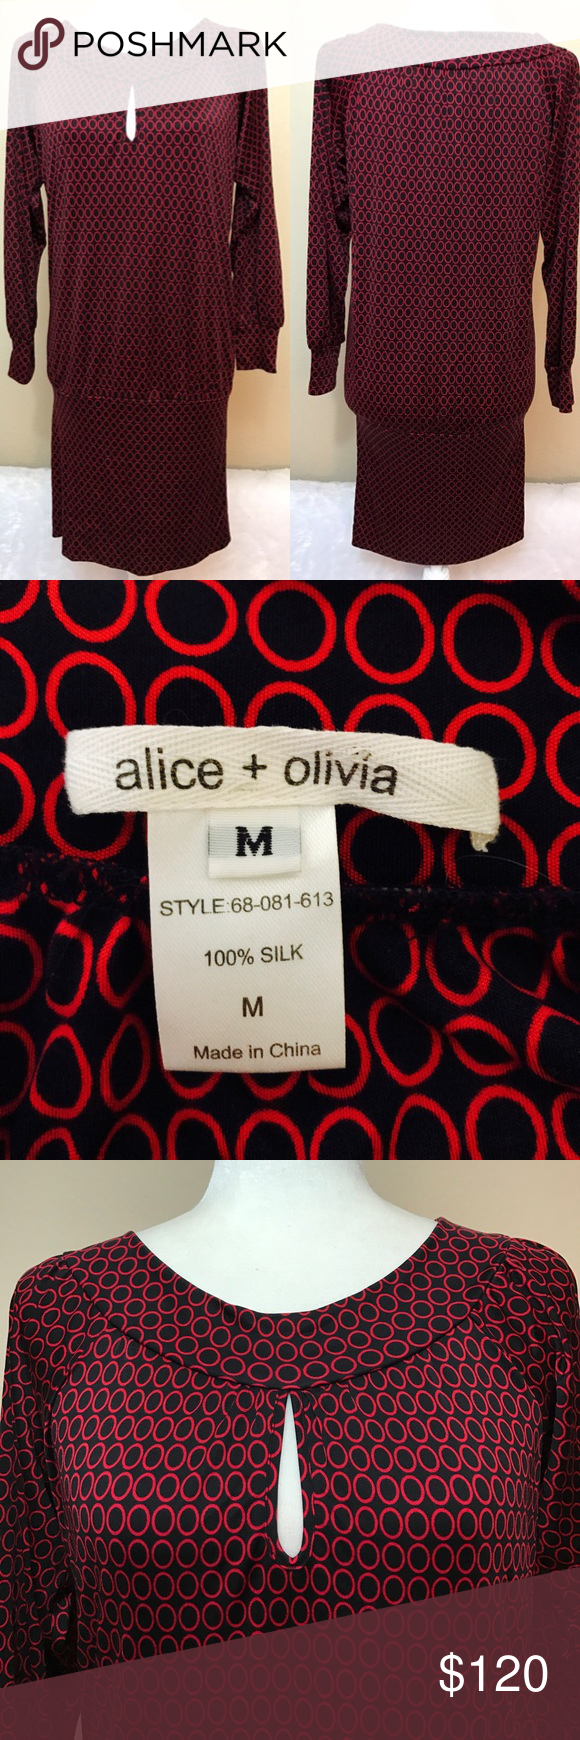 Alice + Olivia 100% silk 70s inspired dress Great condition Alice + Olivia Dresses